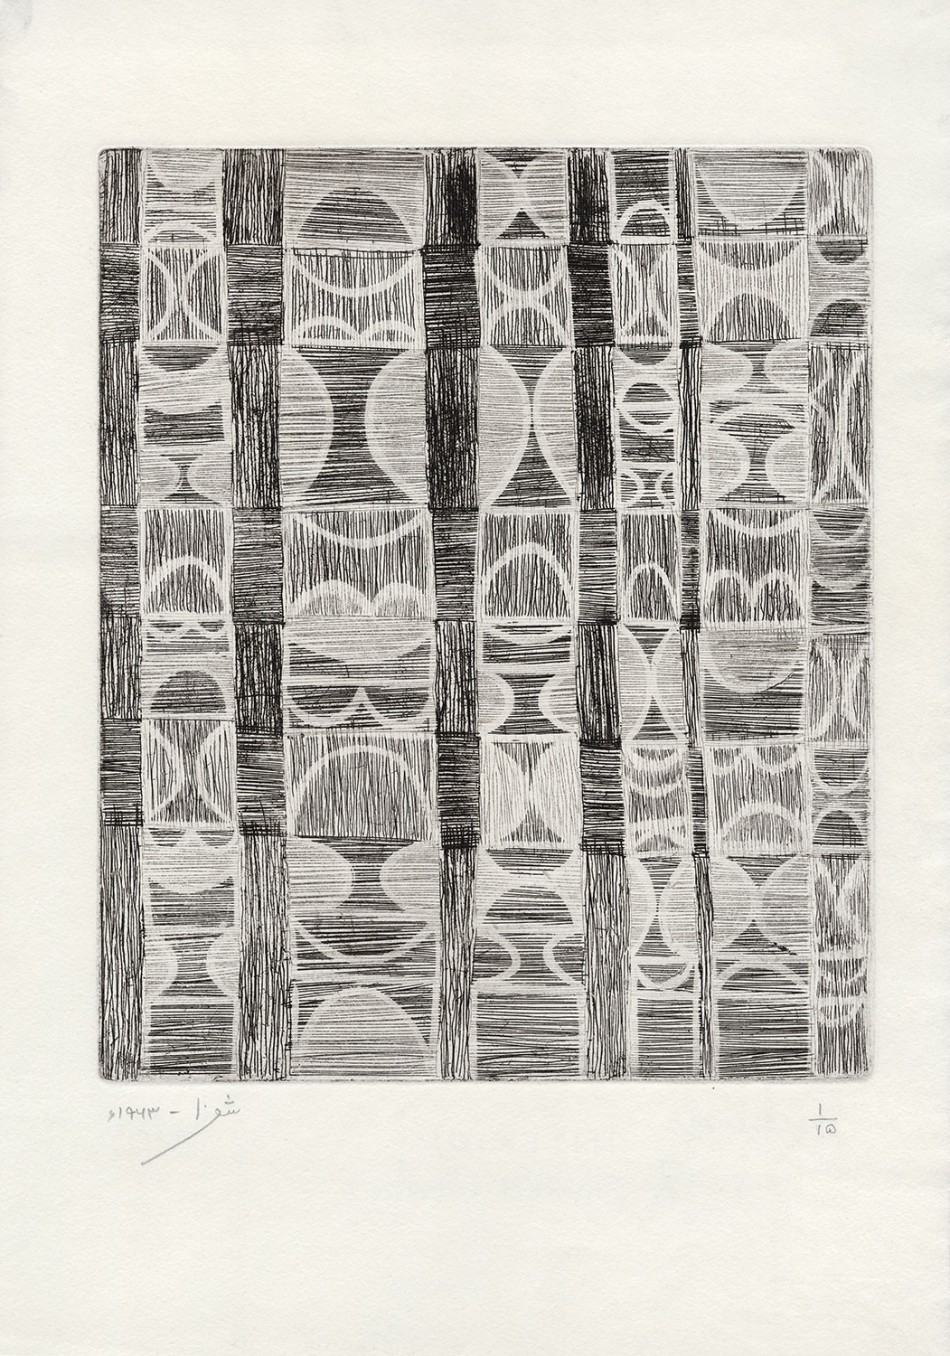 Anwar Jalal Shemza, Interior, 1960, Aquatint and intaglio, 44.1 x 30.6 cm, 17 3/8 x 12 1/8 in, Framed: 53.7 x 46 cm, 21 1/8 x 18 1/8 in